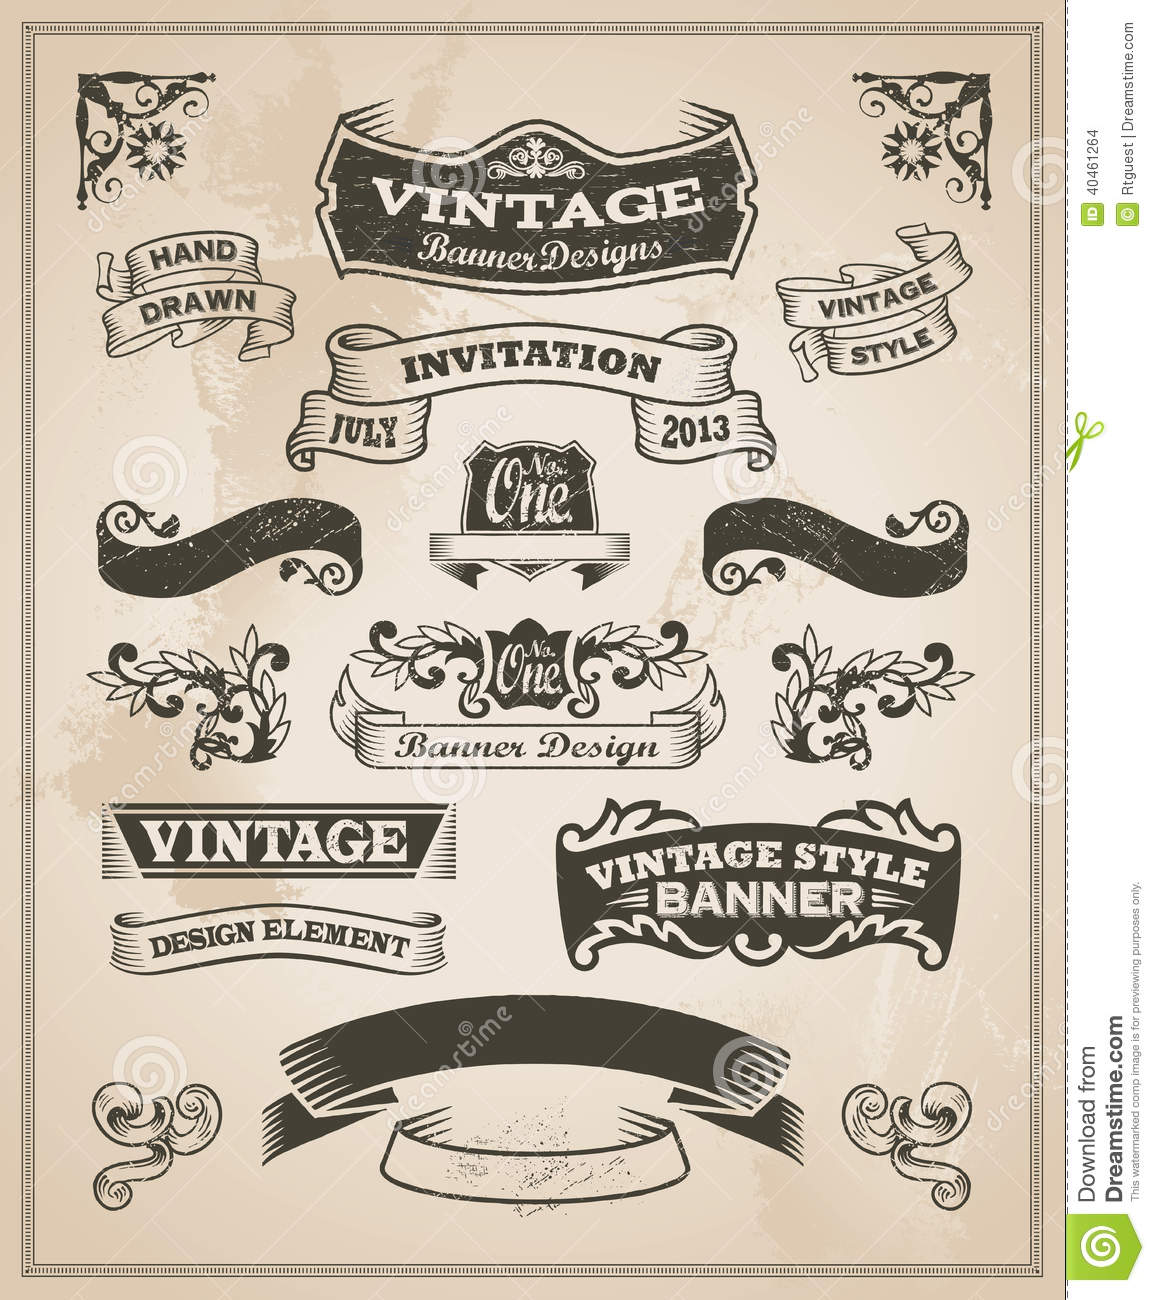 Retro vintage banner and ribbon set stock vector - Retro vintage ...